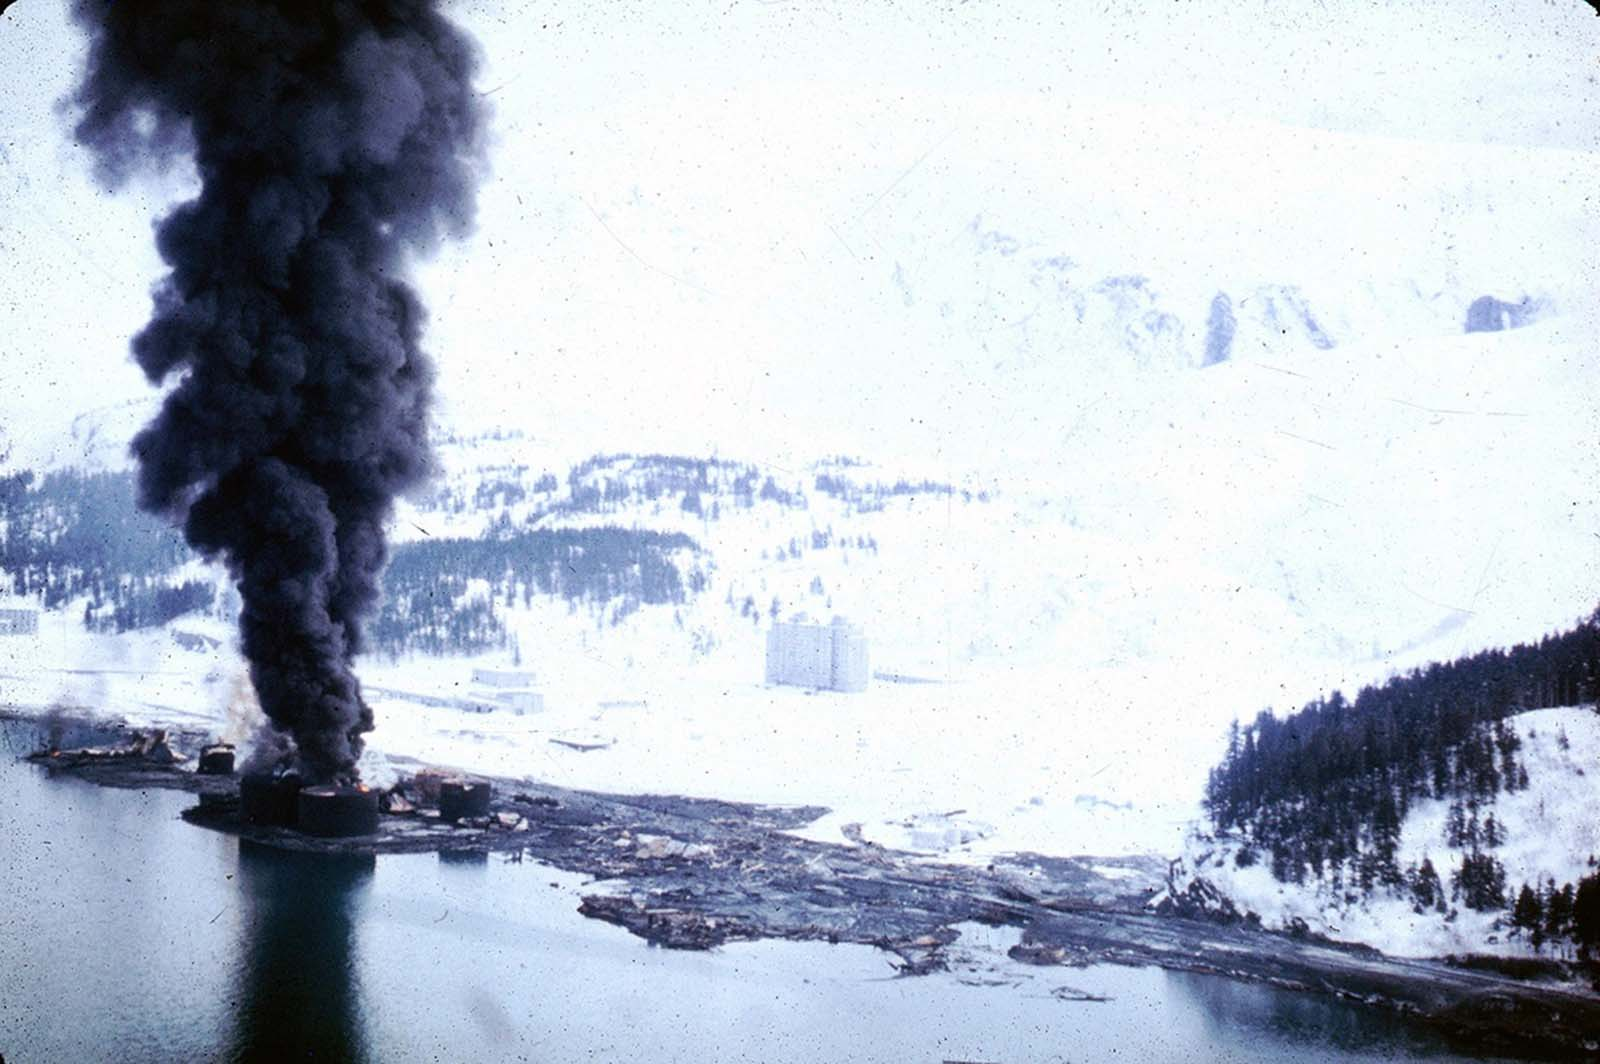 The dock area, a tank farm, and railroad facilities in Whittier, Alaska were severely damaged by surge-waves developed by underwater landslides in Passage Canal, on March 27, 1964. The waves inundated the area of darkened ground, where the snow was soiled or removed by the waves.